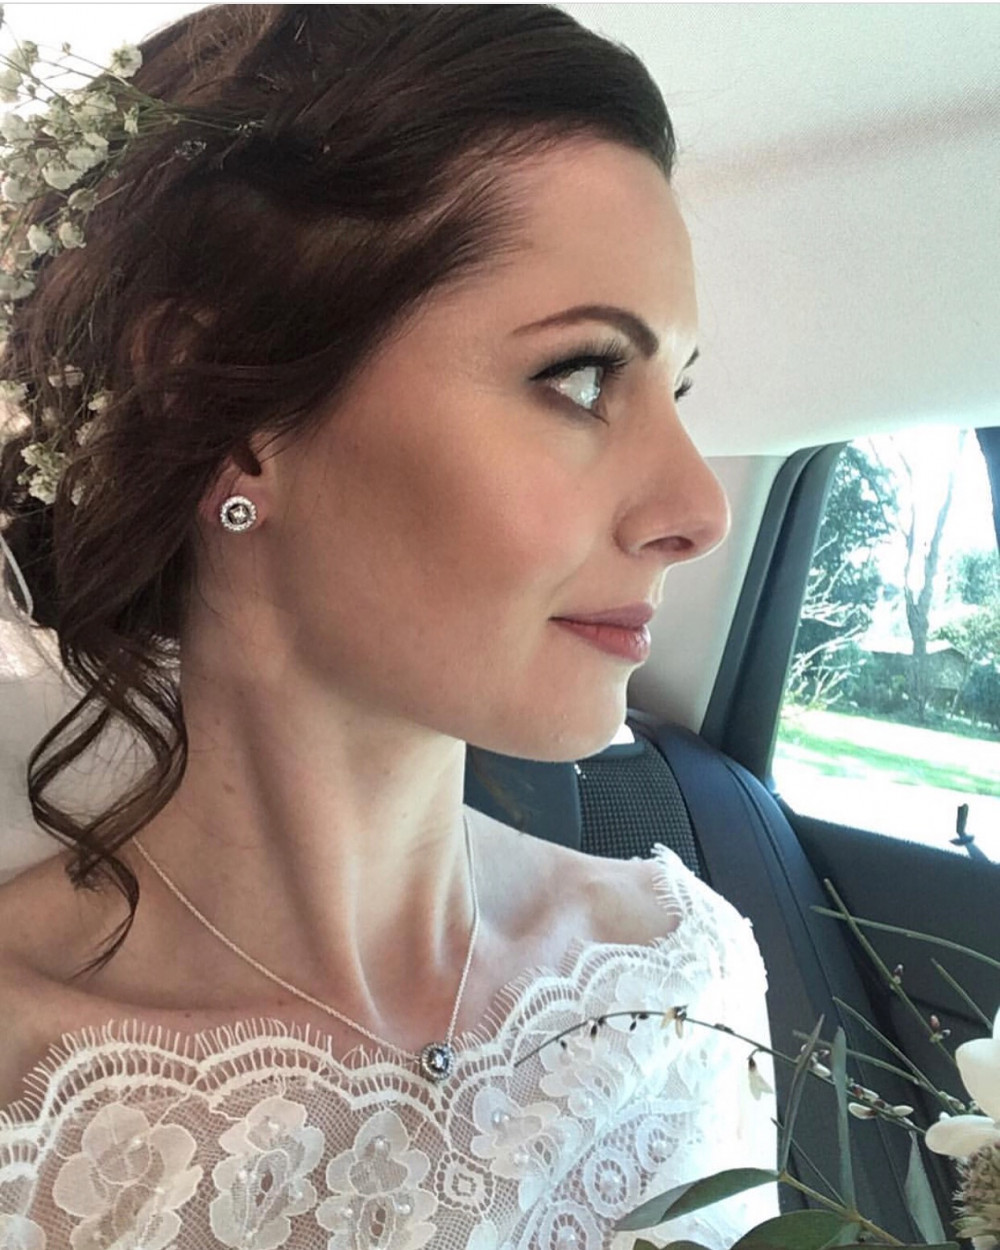 Louise on her way to become Mrs Chapman - Make Me Bridal Artist: Aston's Makeup and Beauty . Photography by: Photogenic photography . #classic #vintage #glamorous #bridalmakeup #bridemakeup